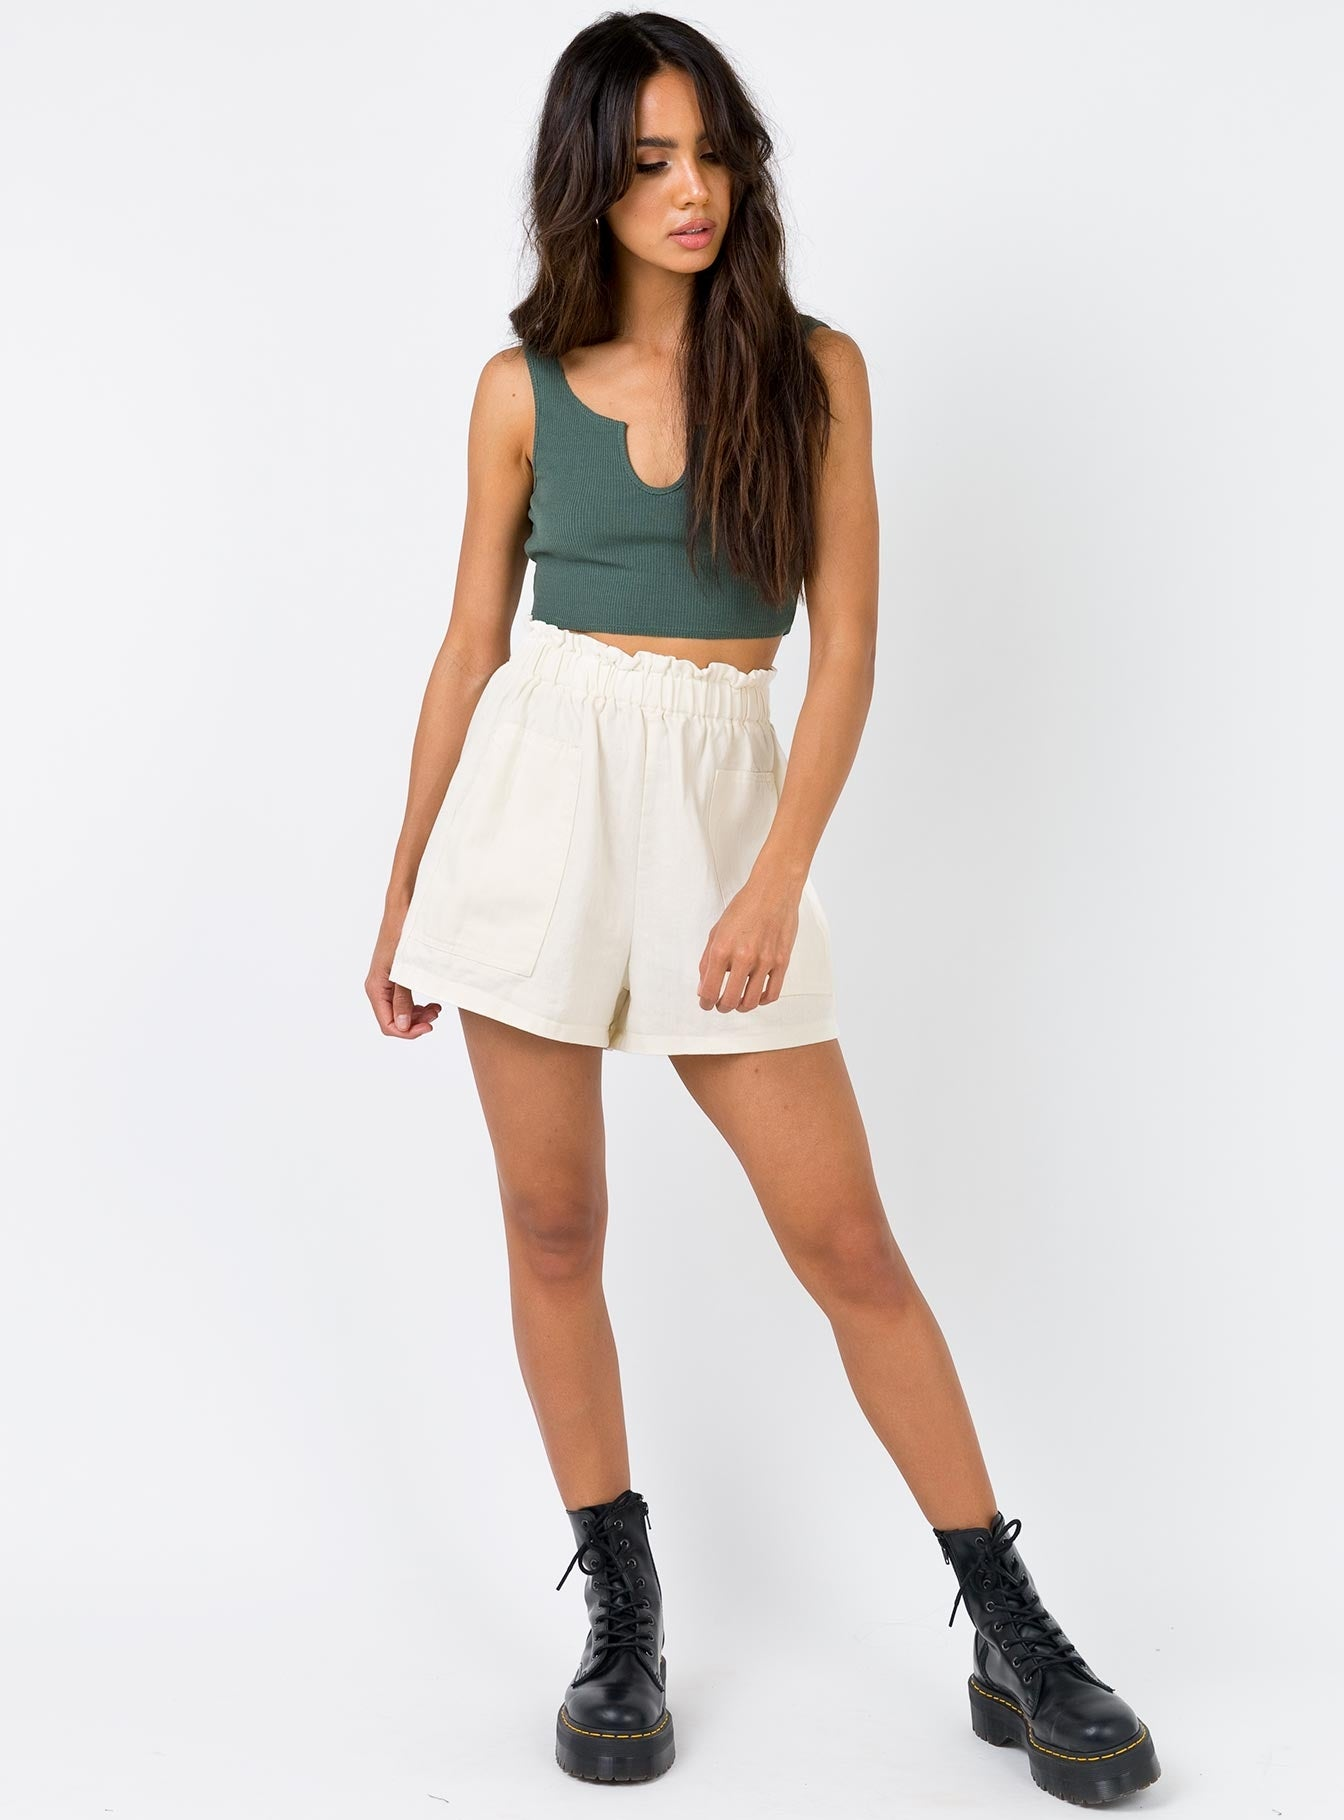 The Liaison Crop Top Khaki